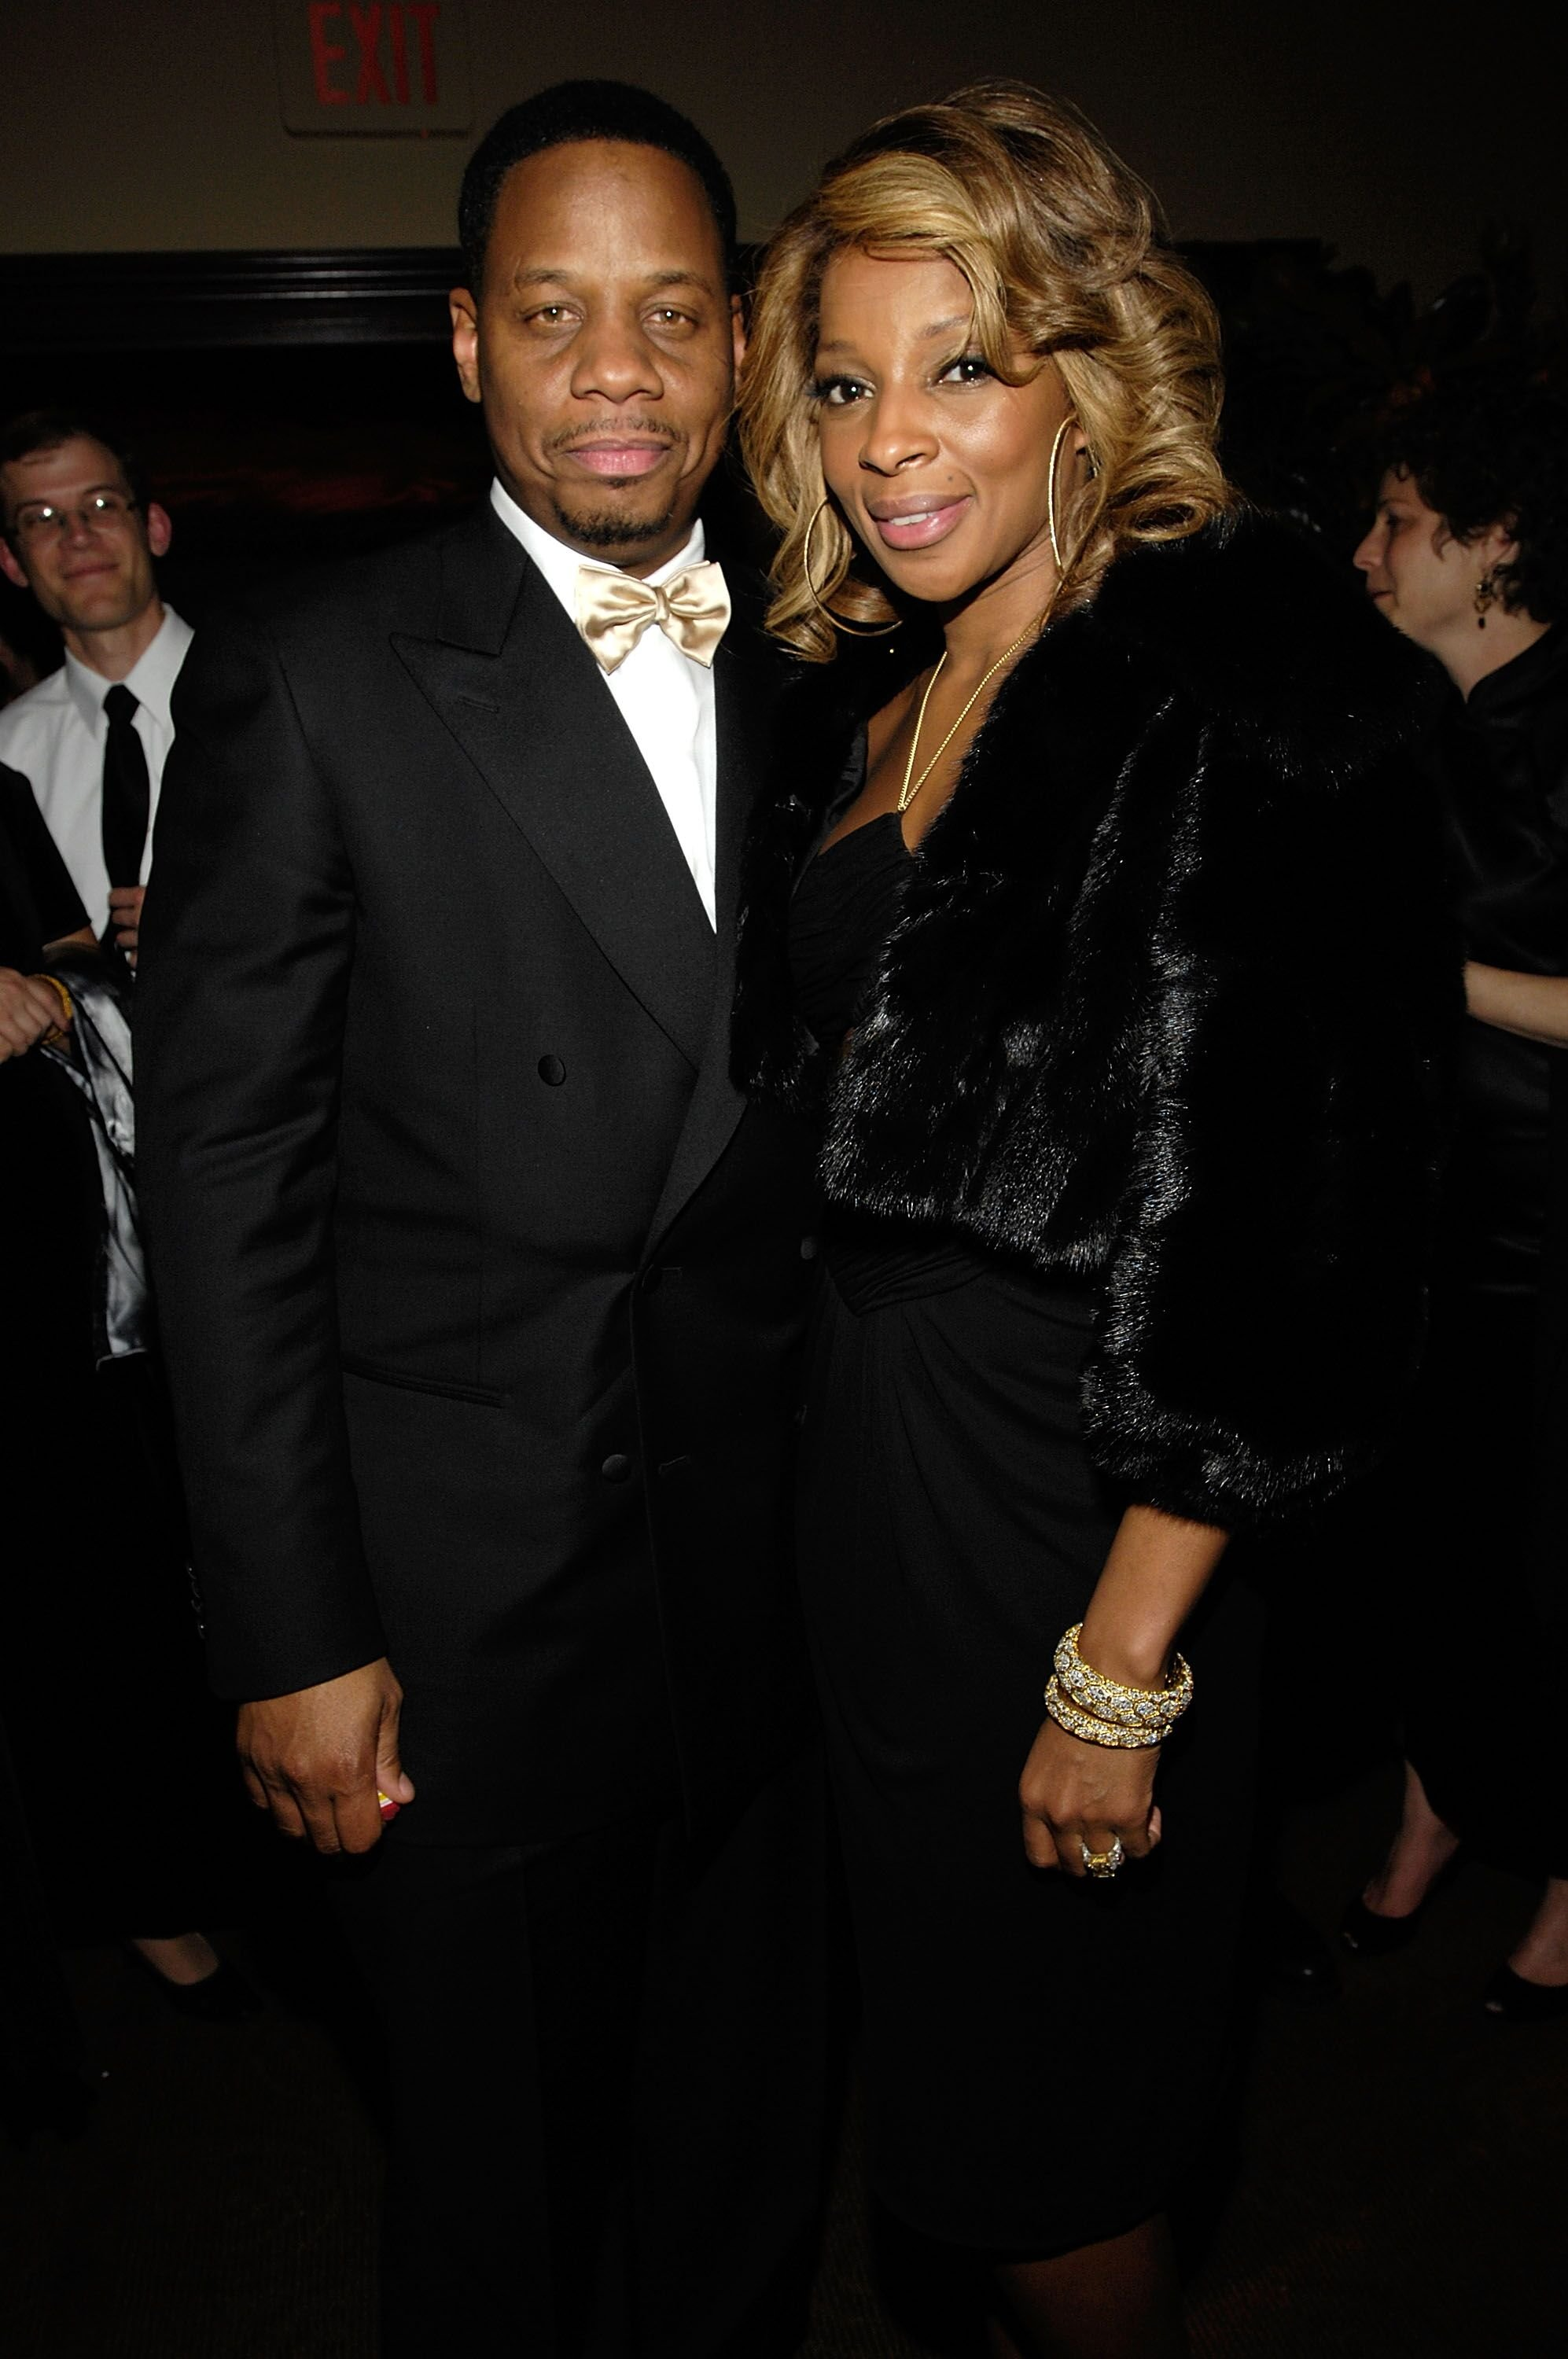 Mary J. Blige and ex-husband Kendu Isaacs/ Source: Getty Images